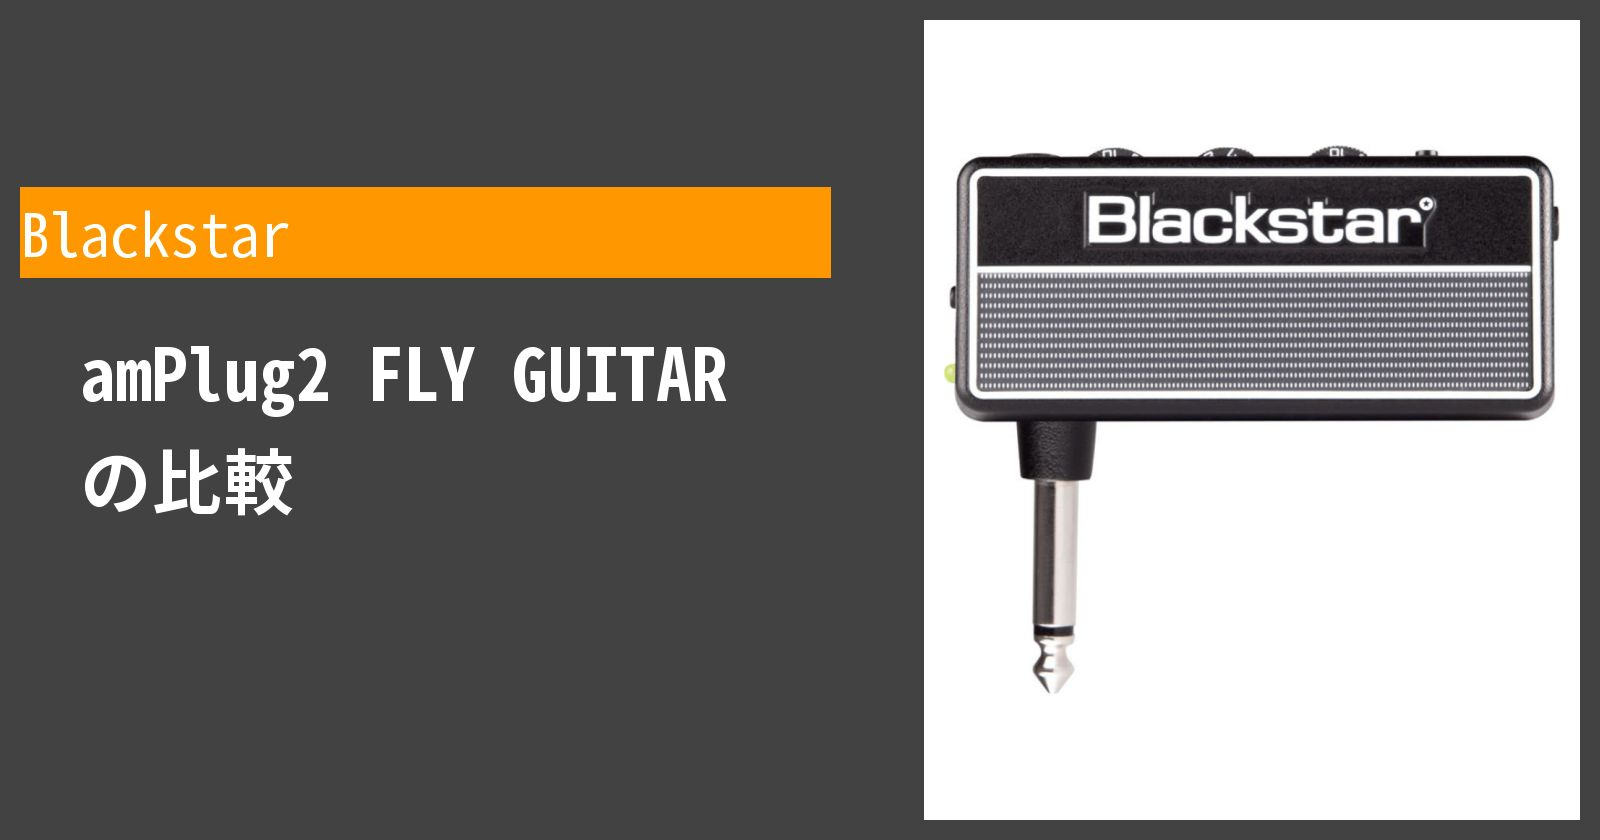 amPlug2 FLY GUITARを徹底評価